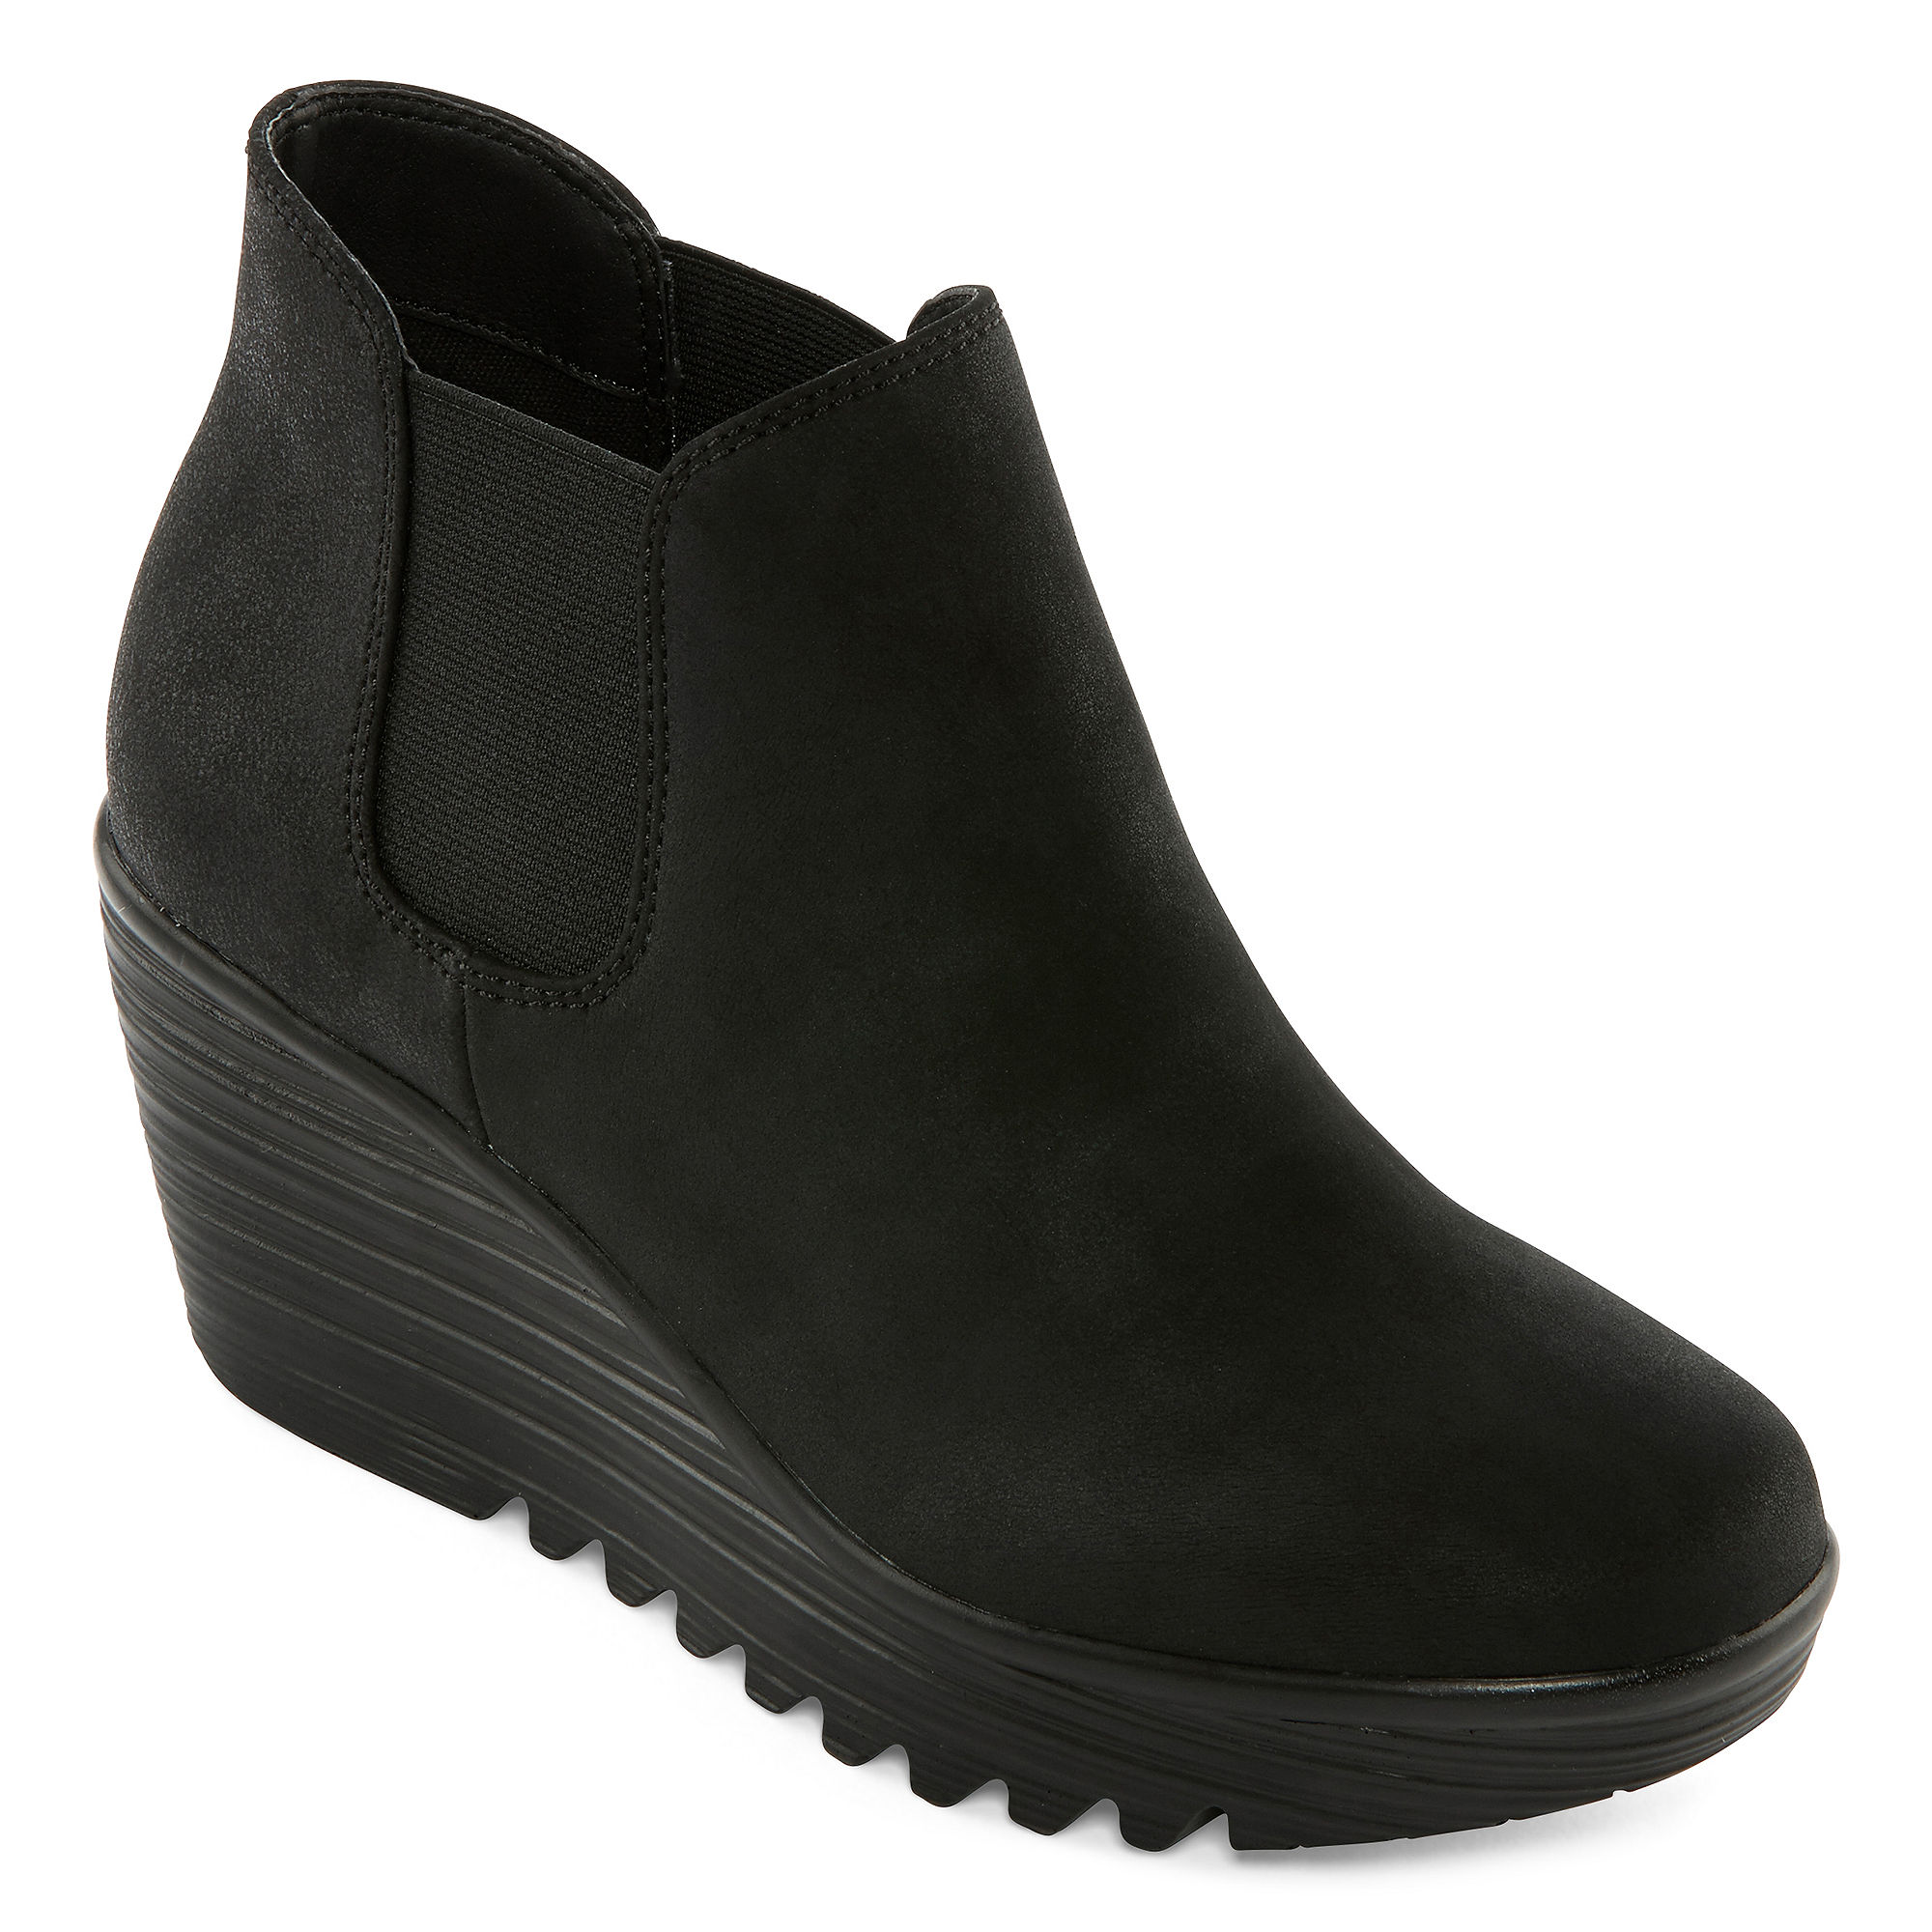 aa3686460a8d UPC 010074100018 product image for St. John s Bay Reese Slip-On Womens Ankle  Booties